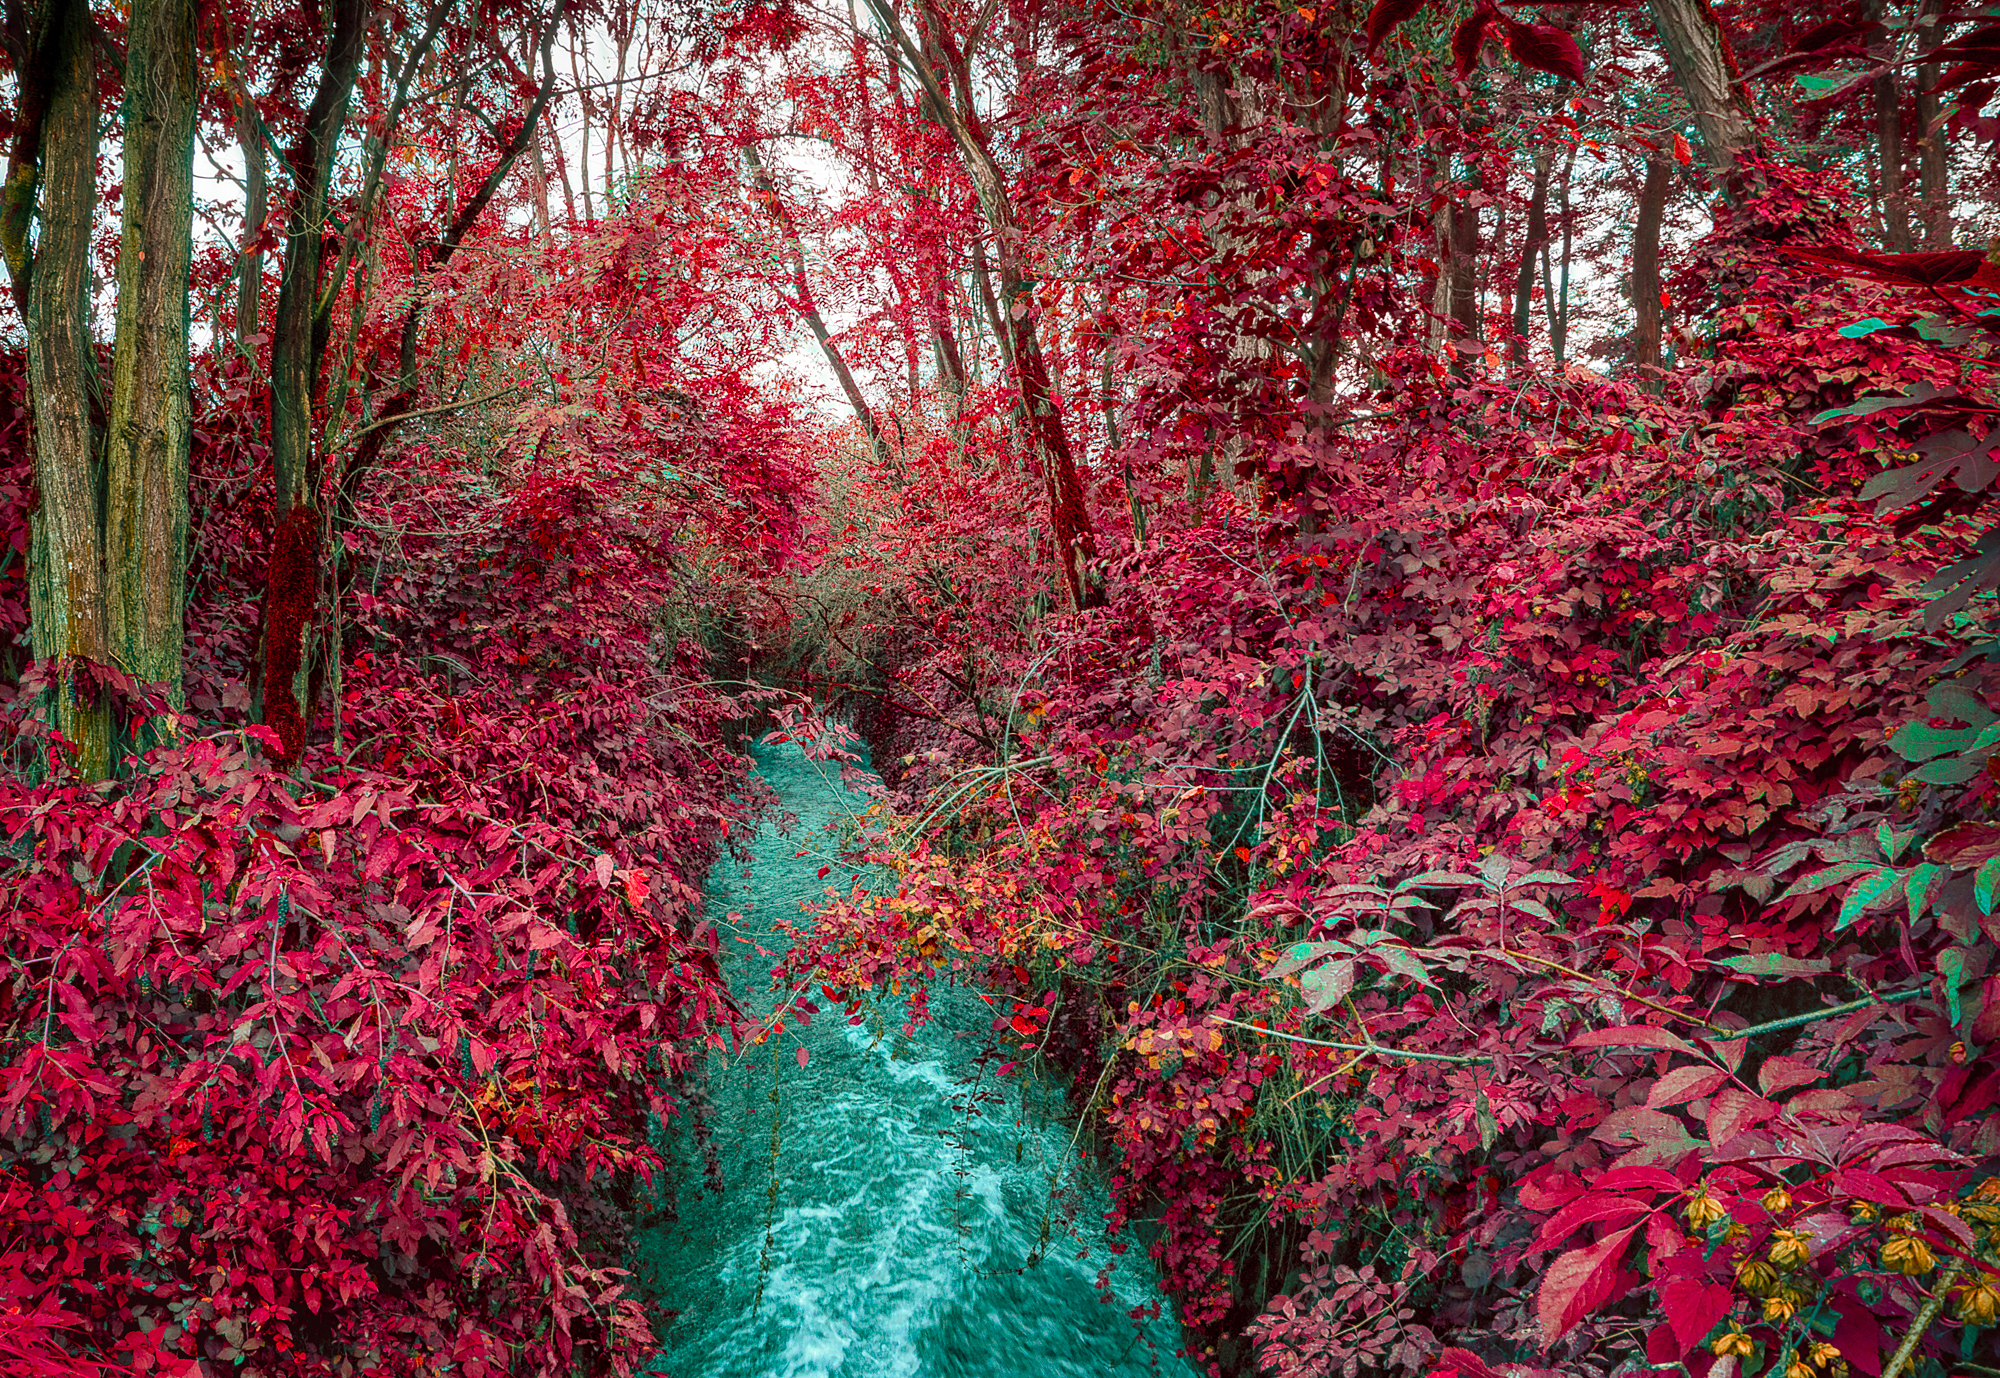 Lining the canal with extraordinary color. It's ok to improve upon nature at times, right?